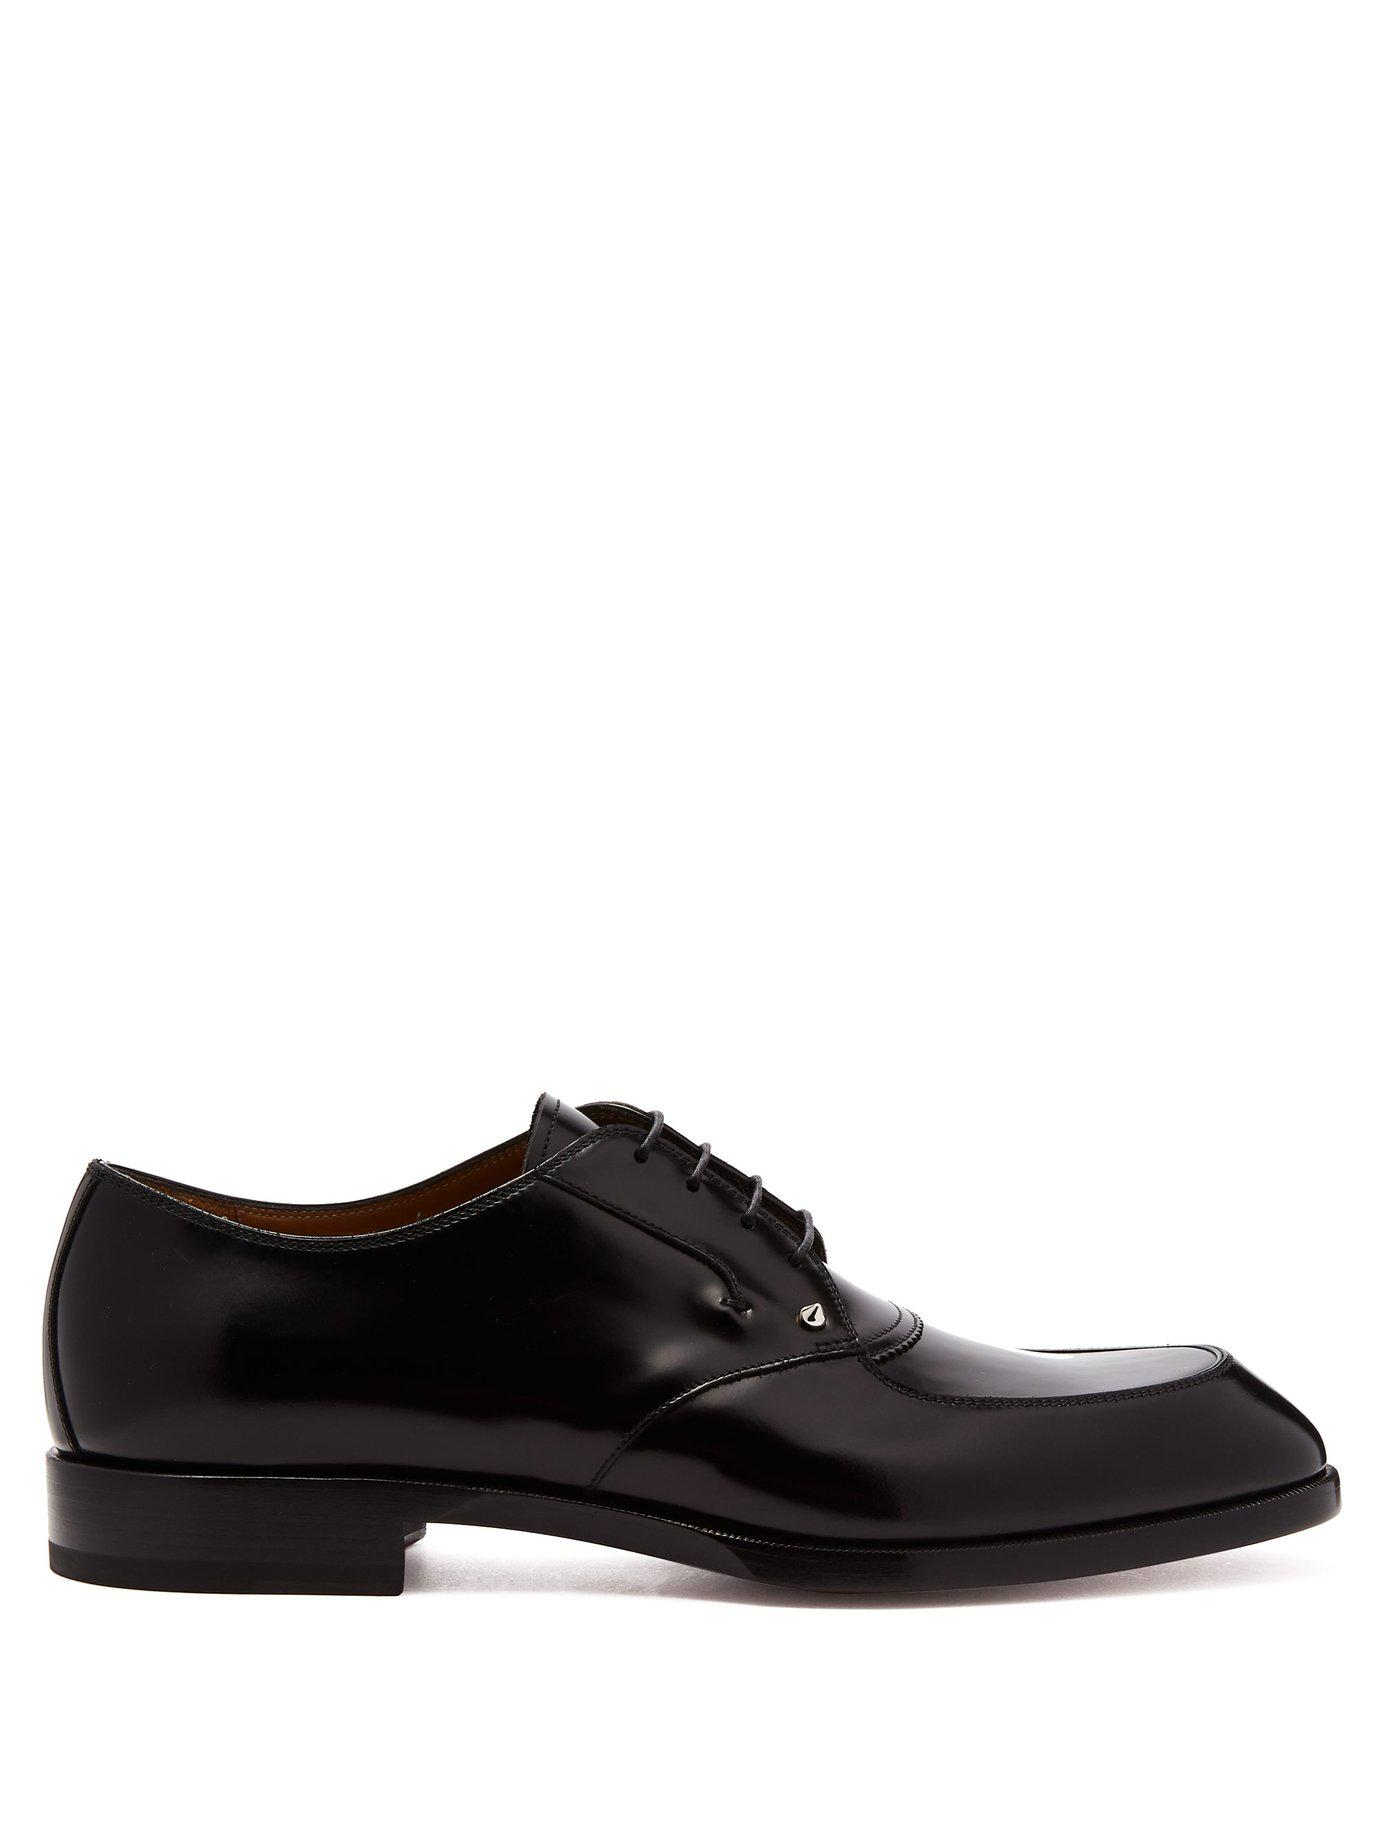 22ce5023364 Lyst - Christian Louboutin Thomas Iii Leather Oxford Shoes in Black ...